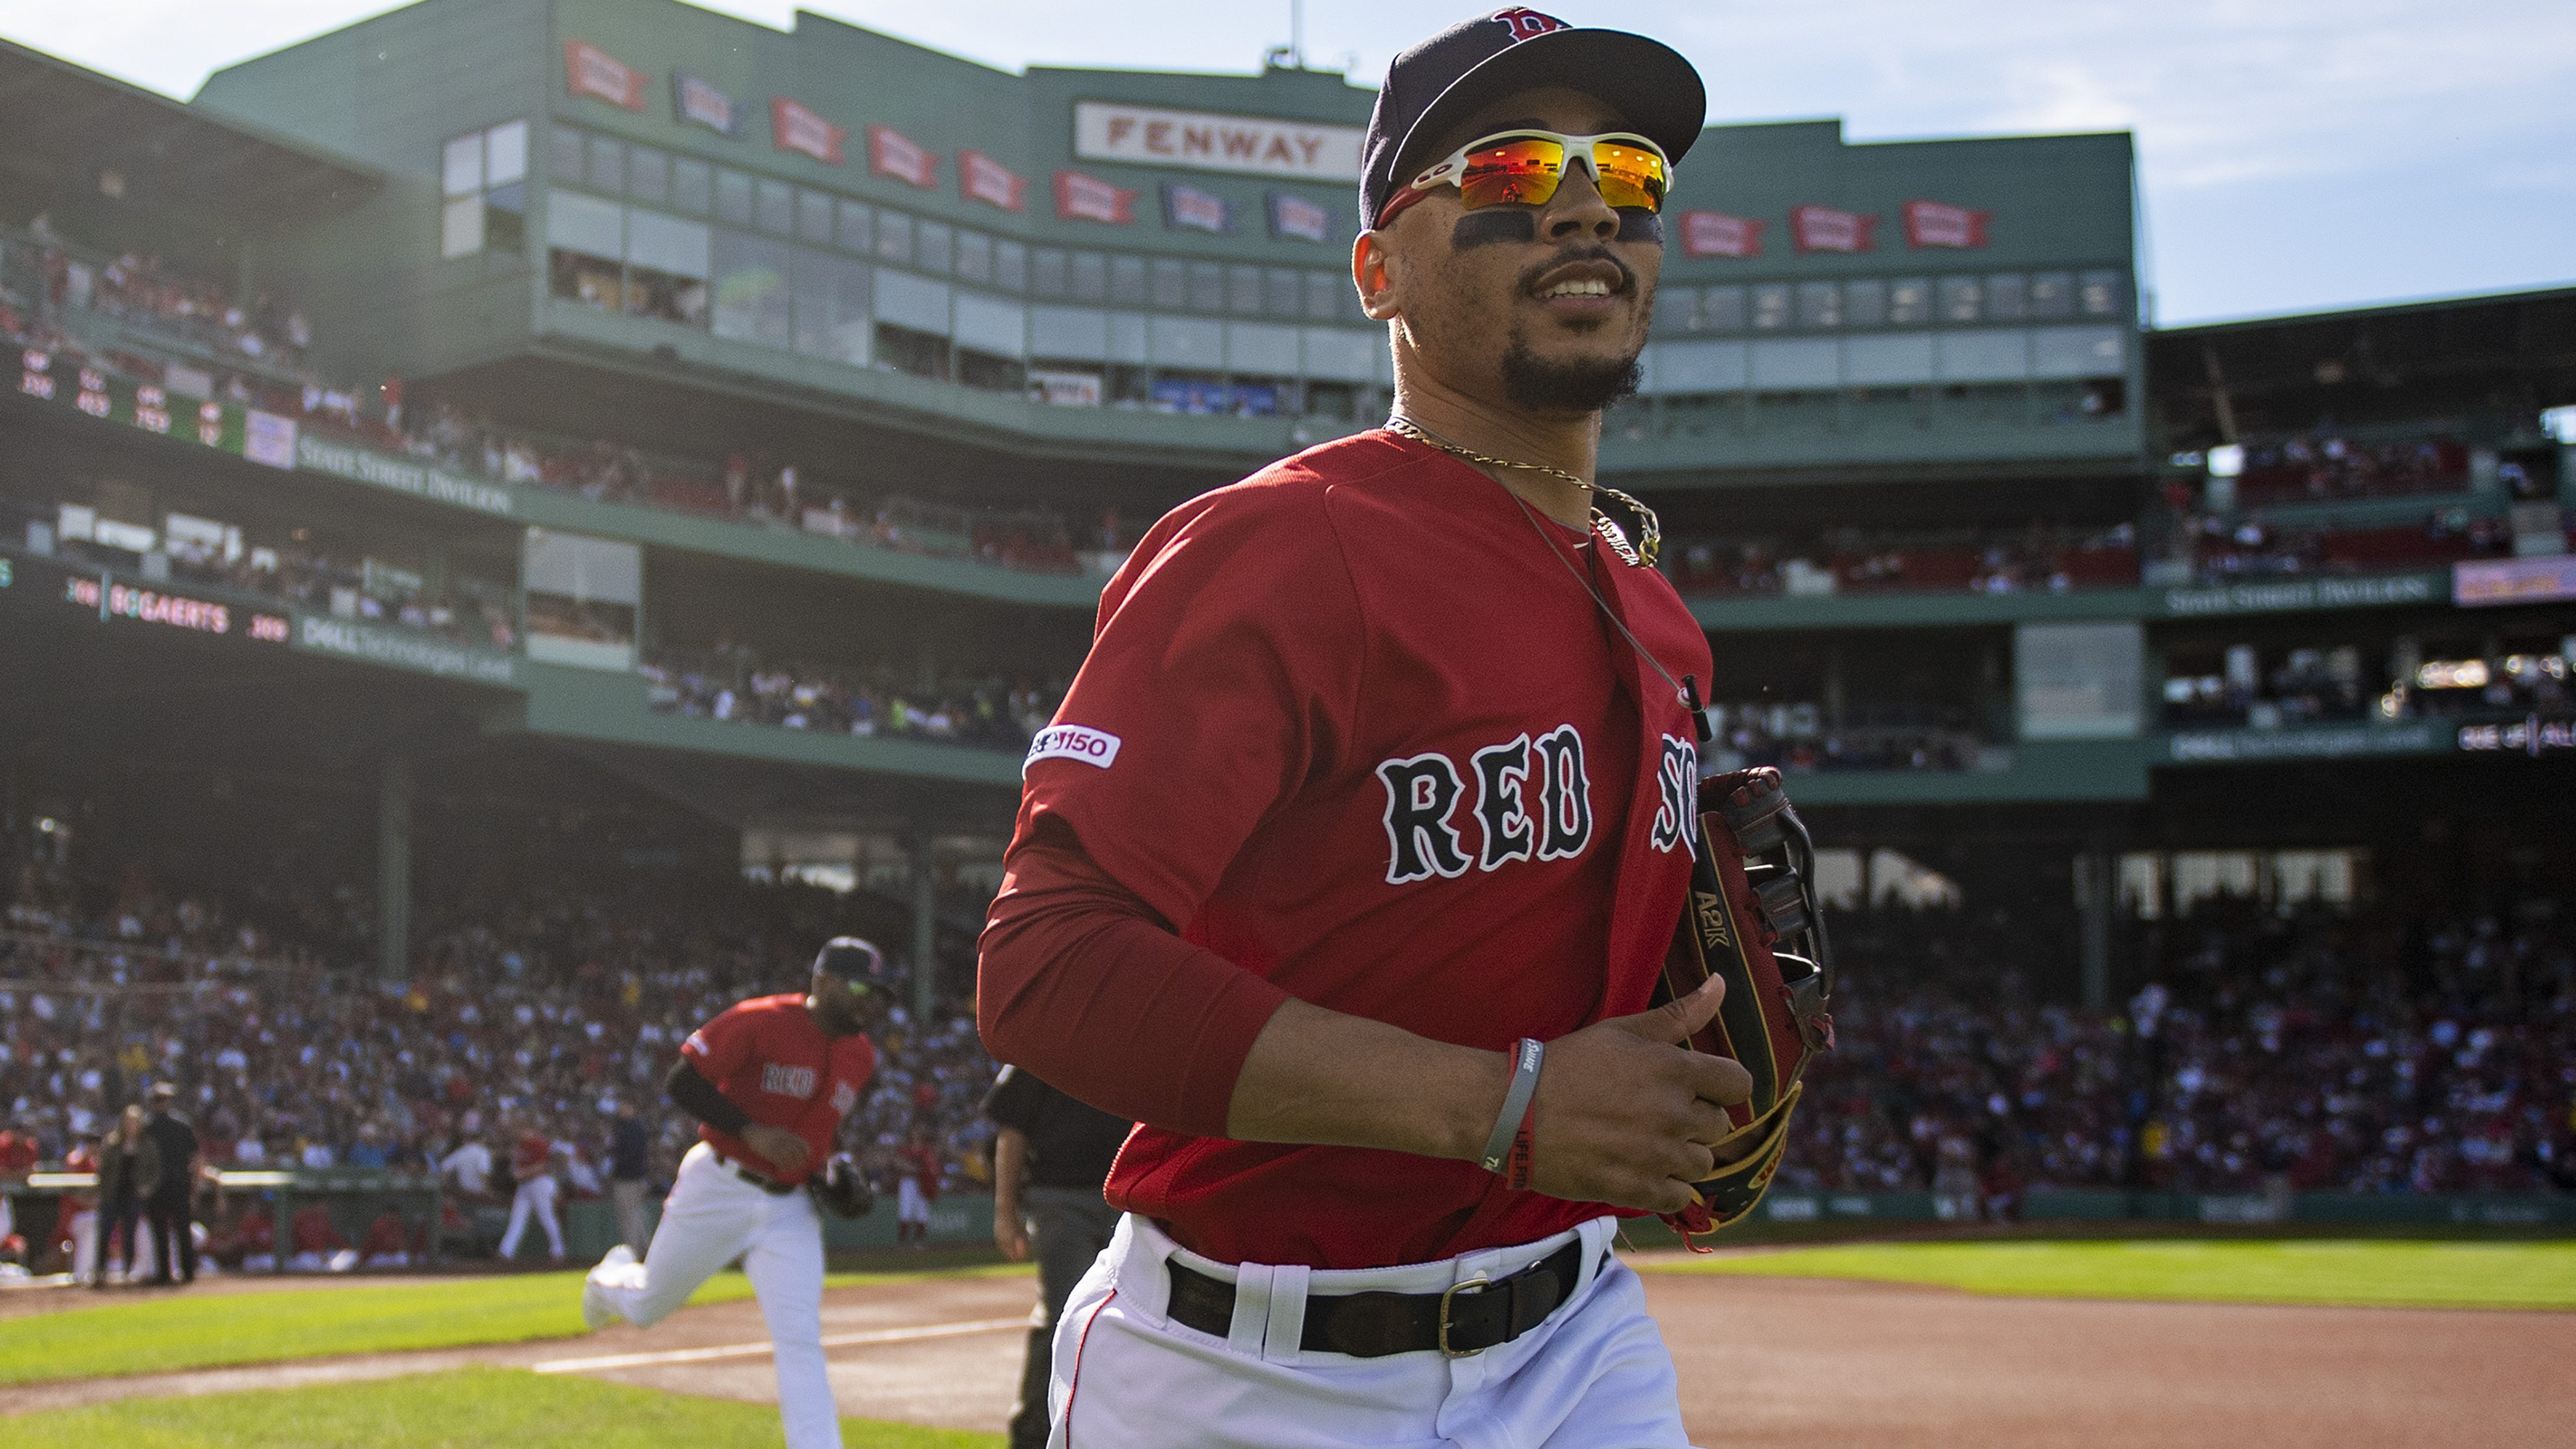 Report: Red Sox, Padres have discussed Mookie Betts trade